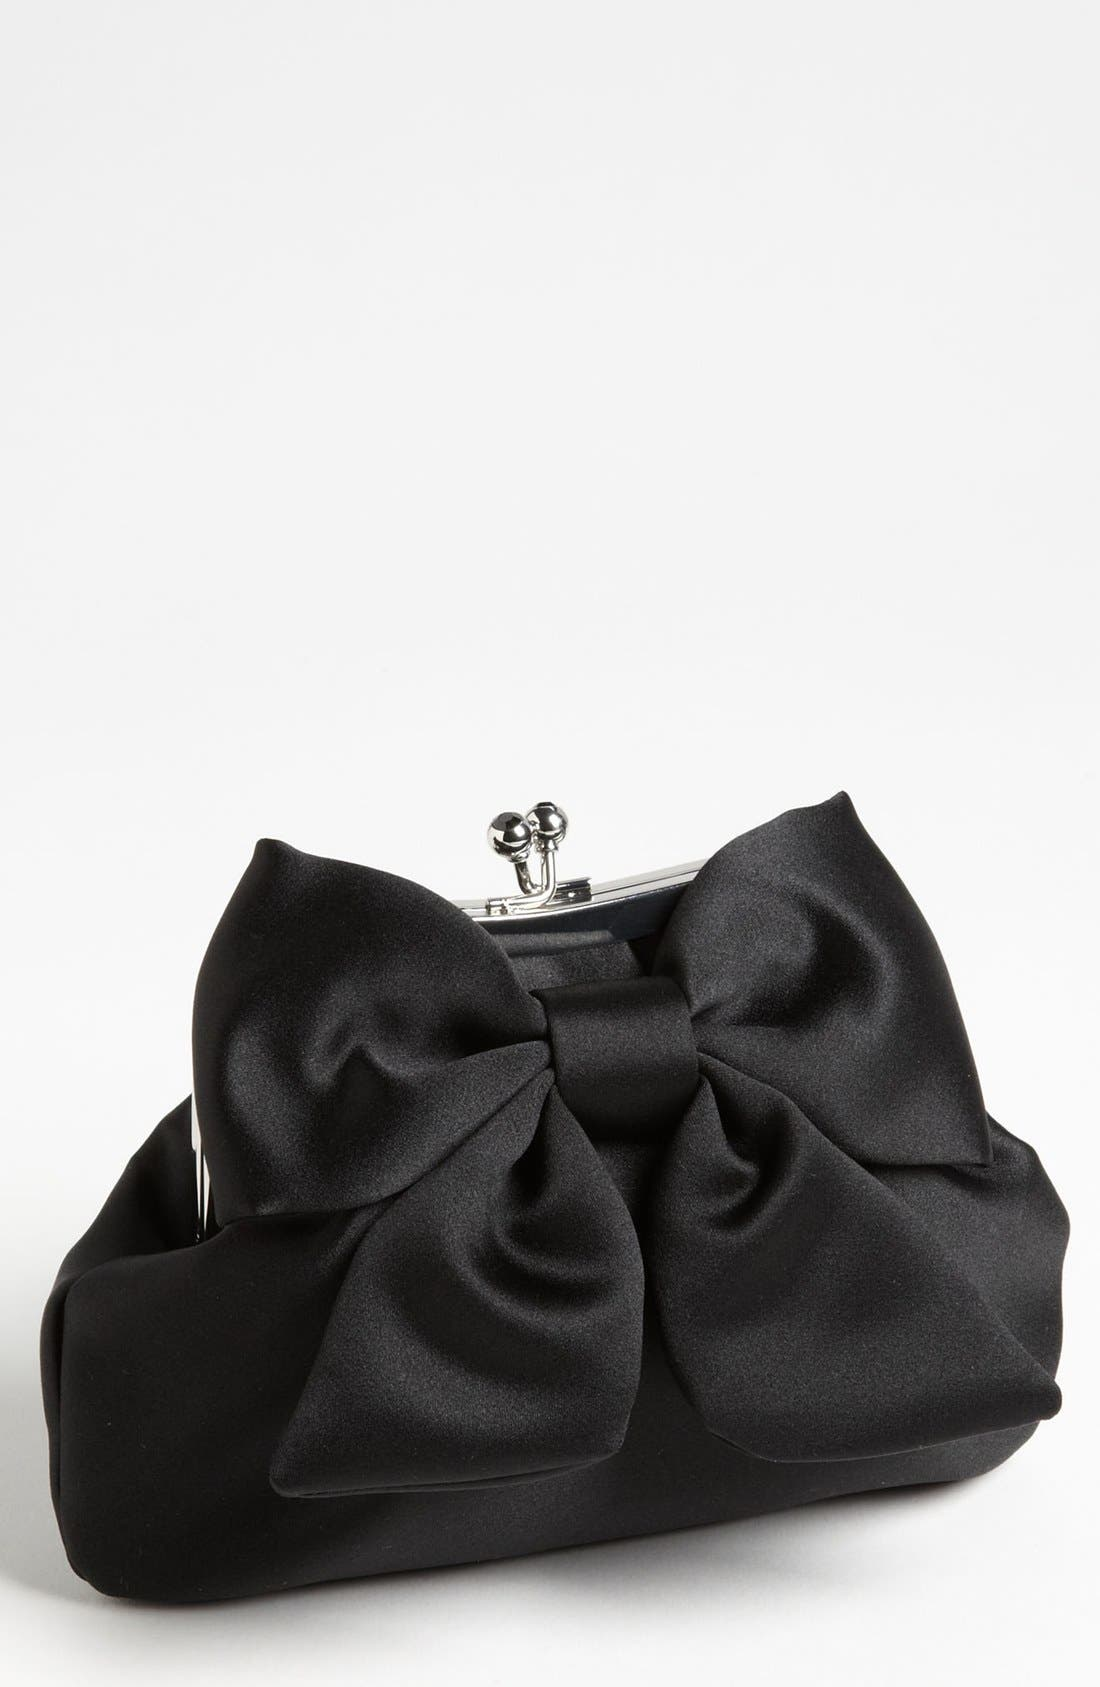 Main Image - Sondra Roberts 'Large' Satin Bow Clutch